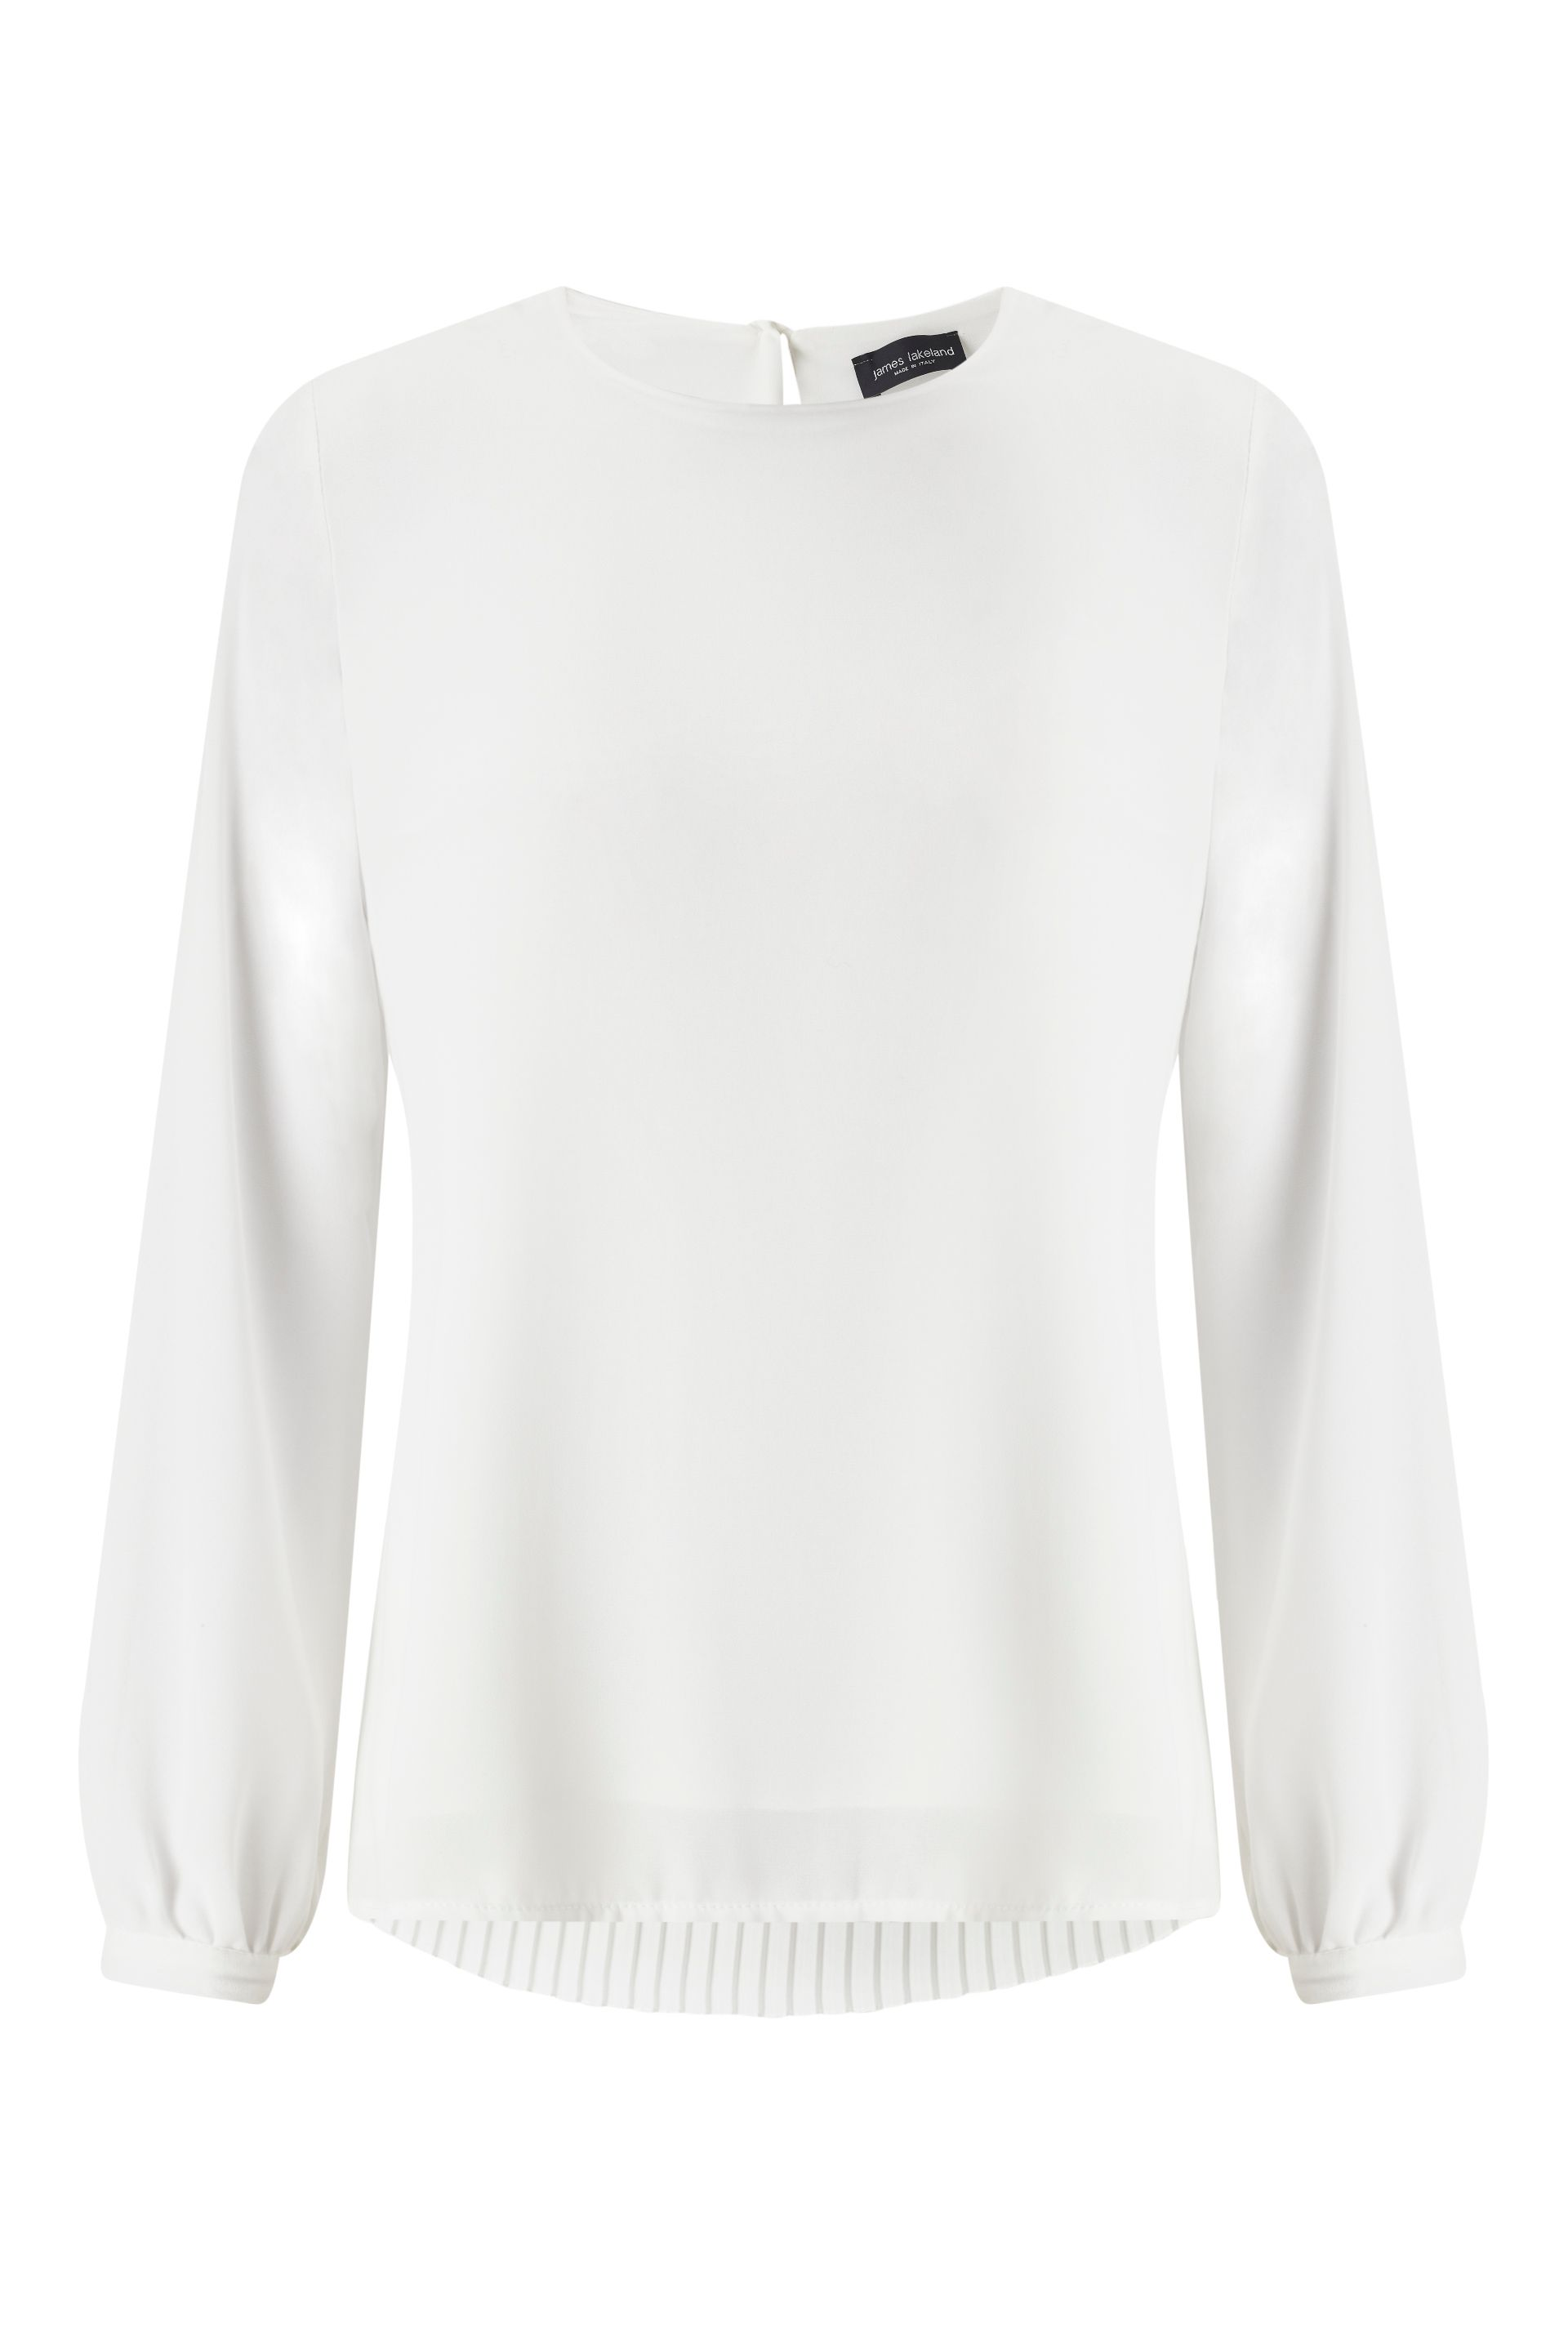 James Lakeland Pleat Back Blouse, White